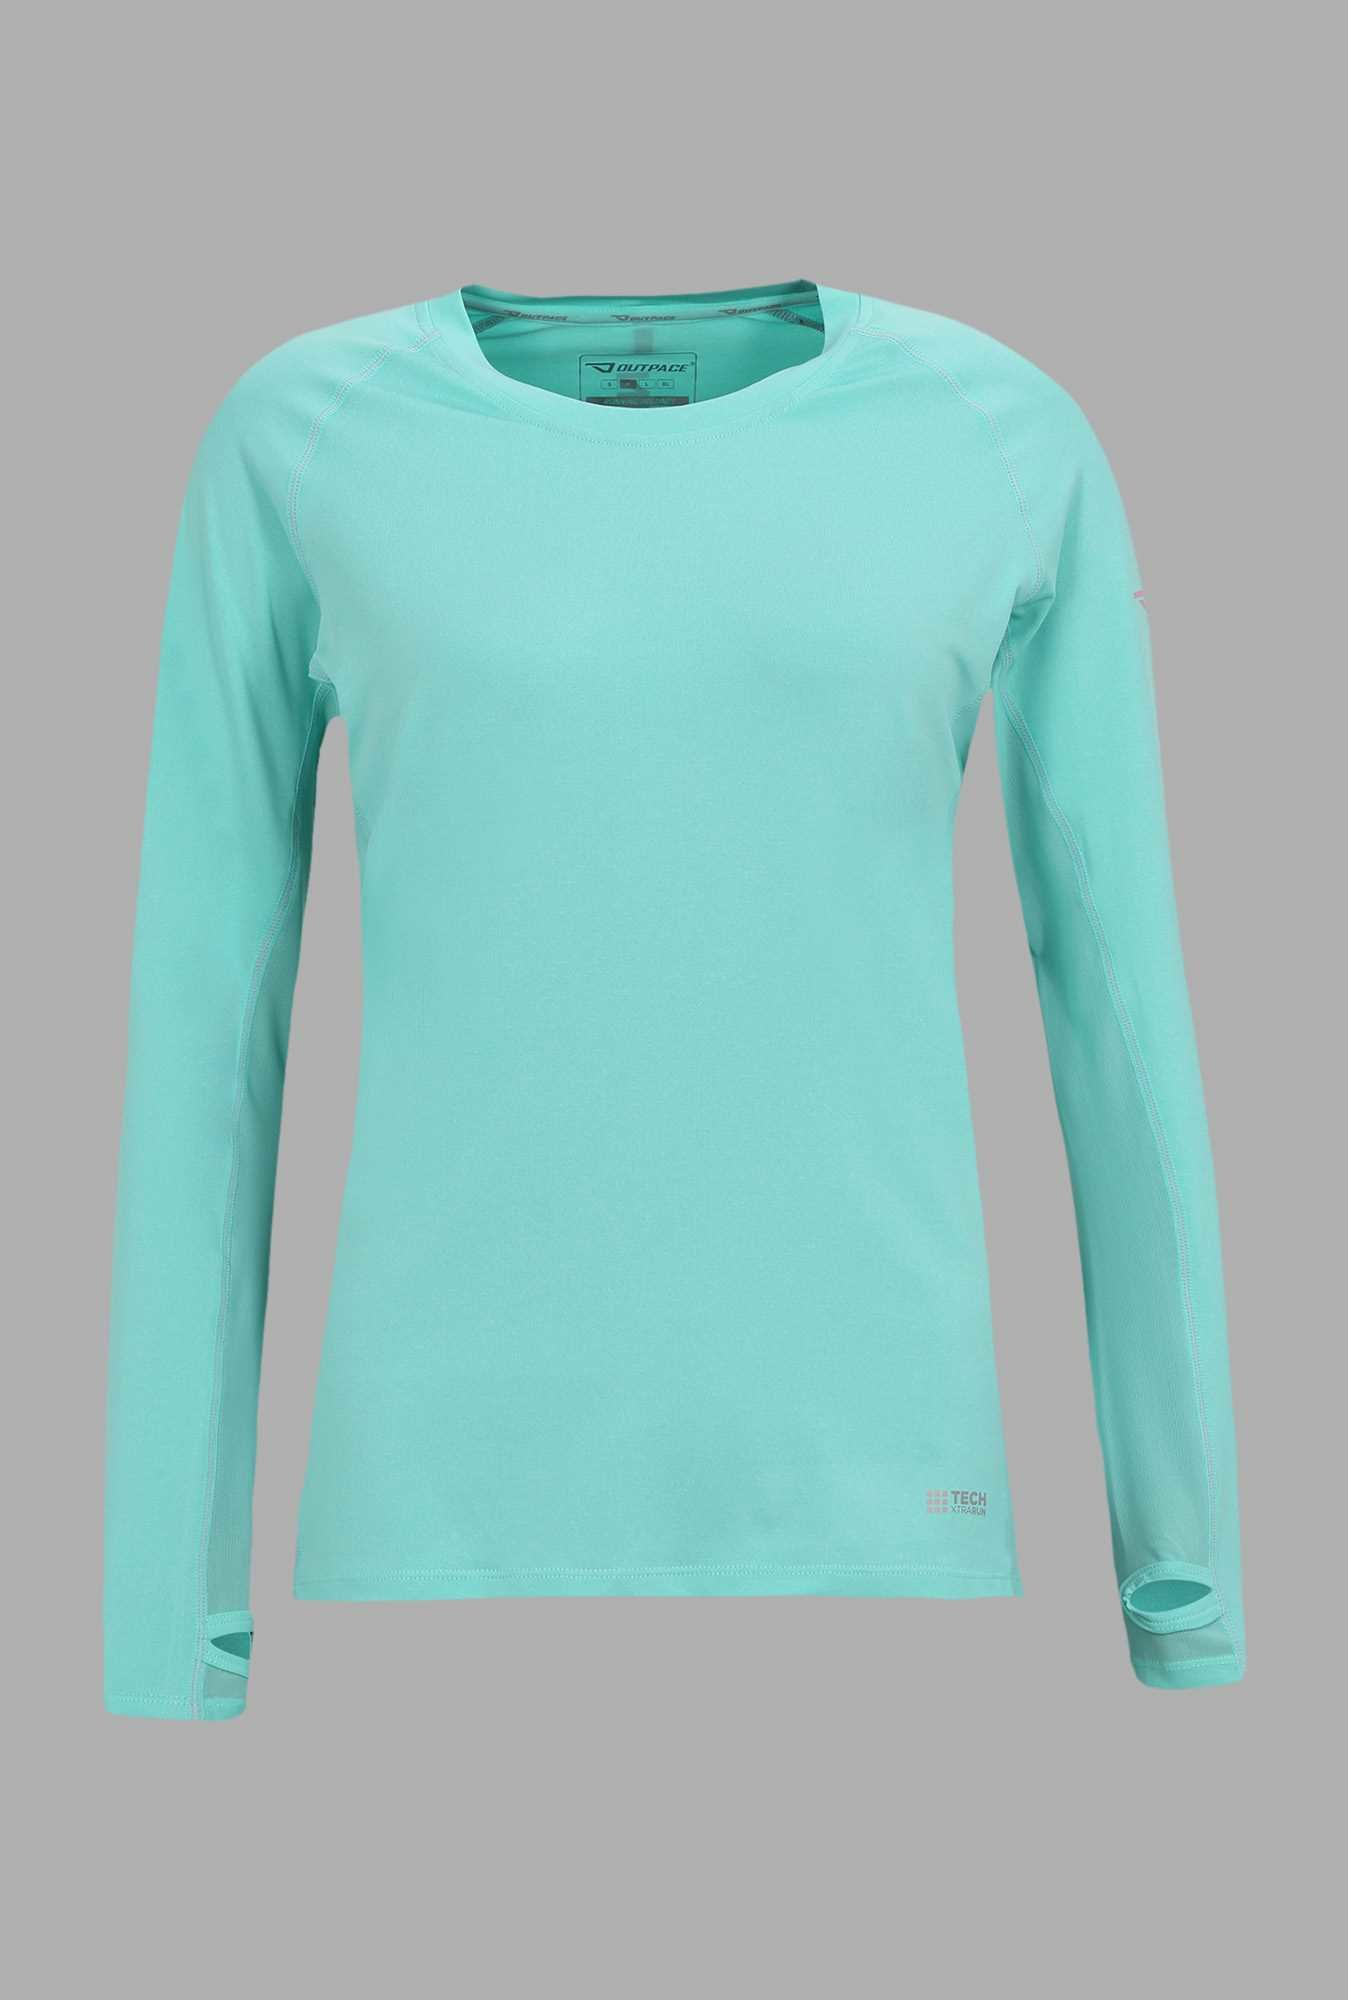 Outpace Turquoise Solid Running T Shirt